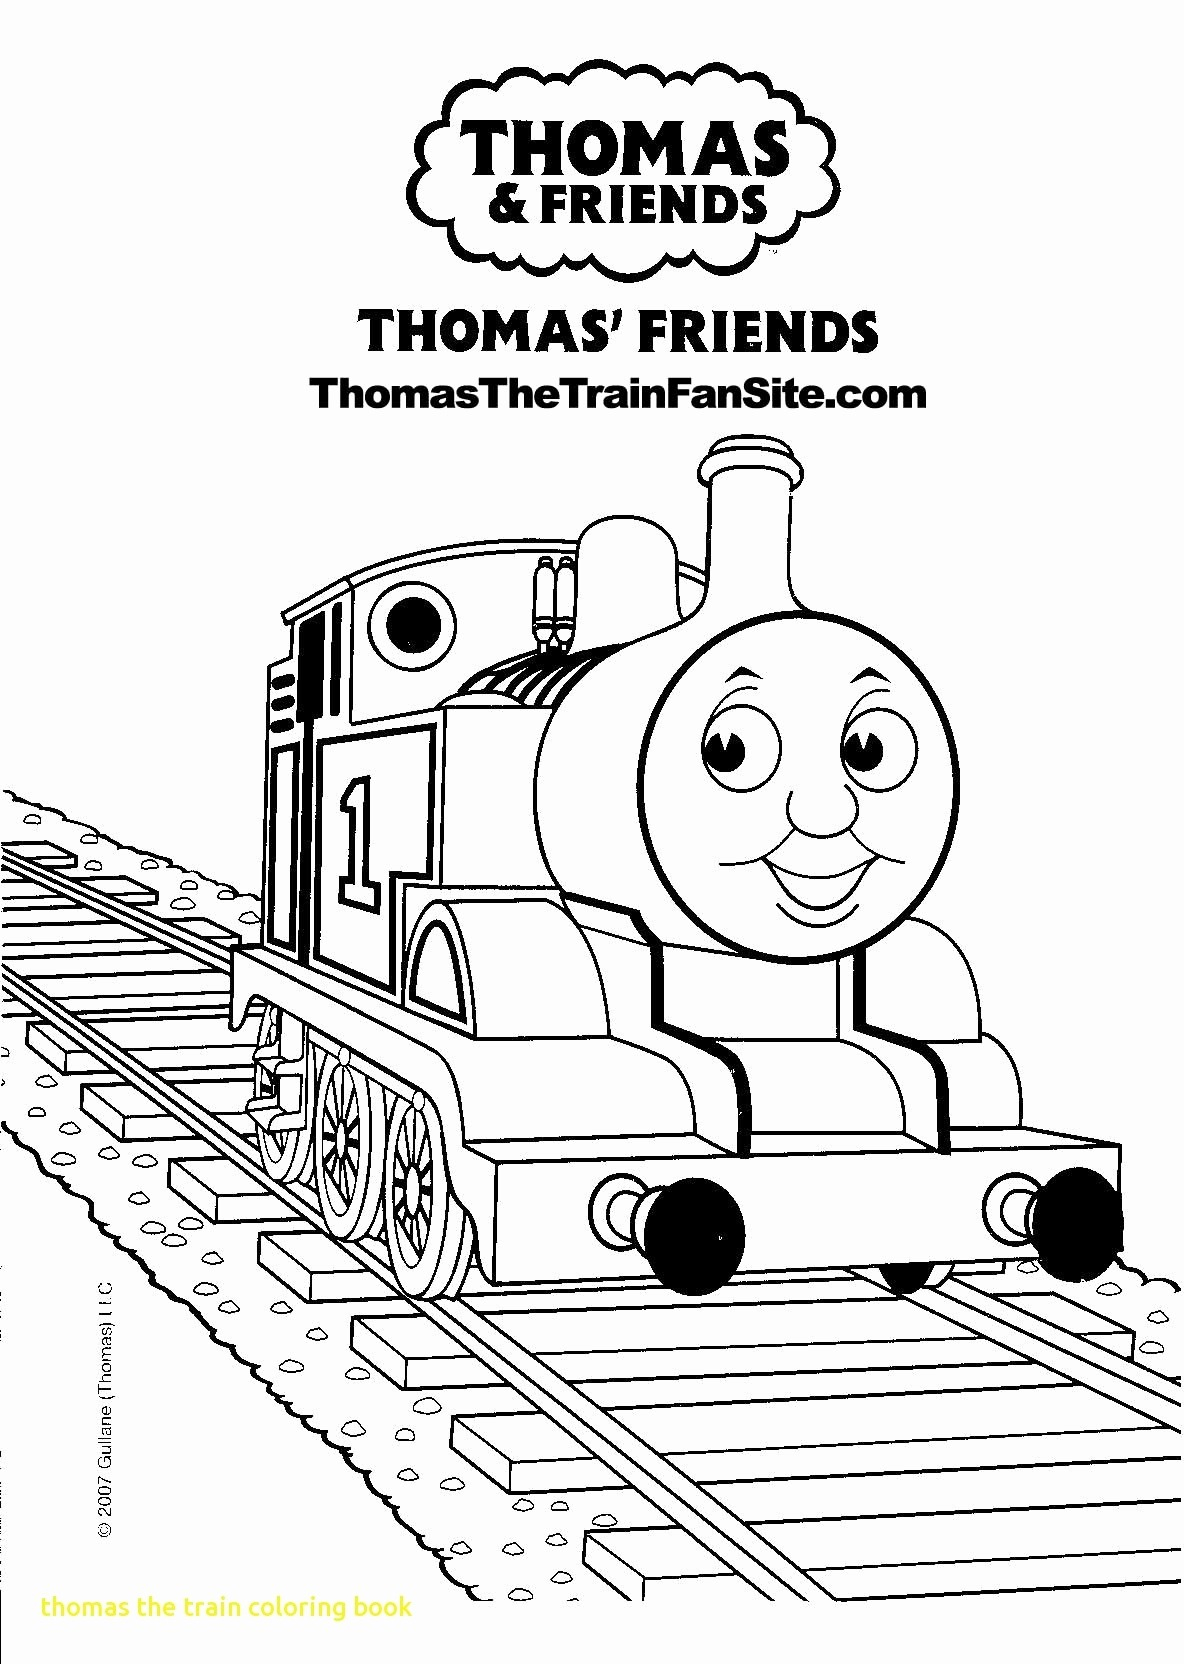 coloring pages thomas the train Collection-Thomas Train Coloring Pages Printable Coloring Pages Thomas the Train Heathermarxgallery 17-q